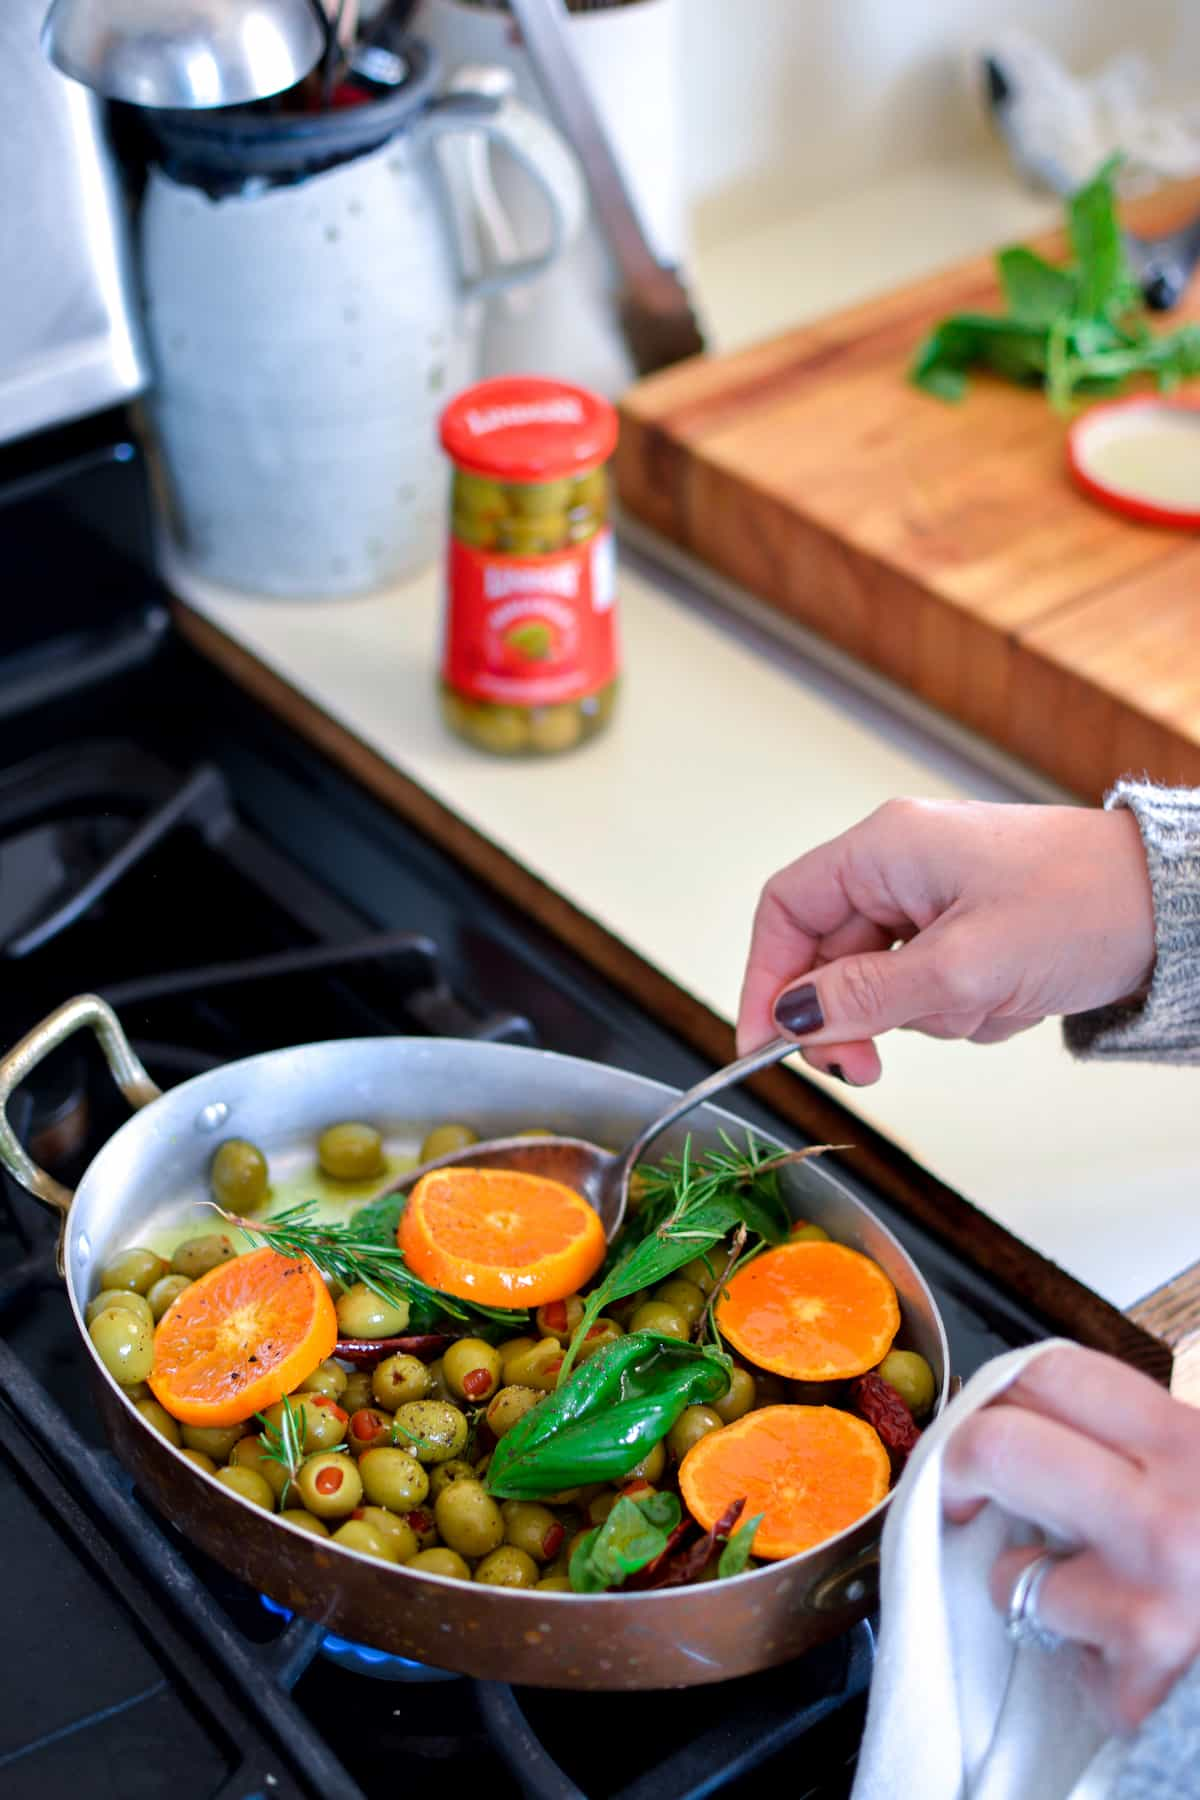 A person warming green, pimento-stuffed olives on the stove with tangerine slices, and fresh herbs in a copper pan.